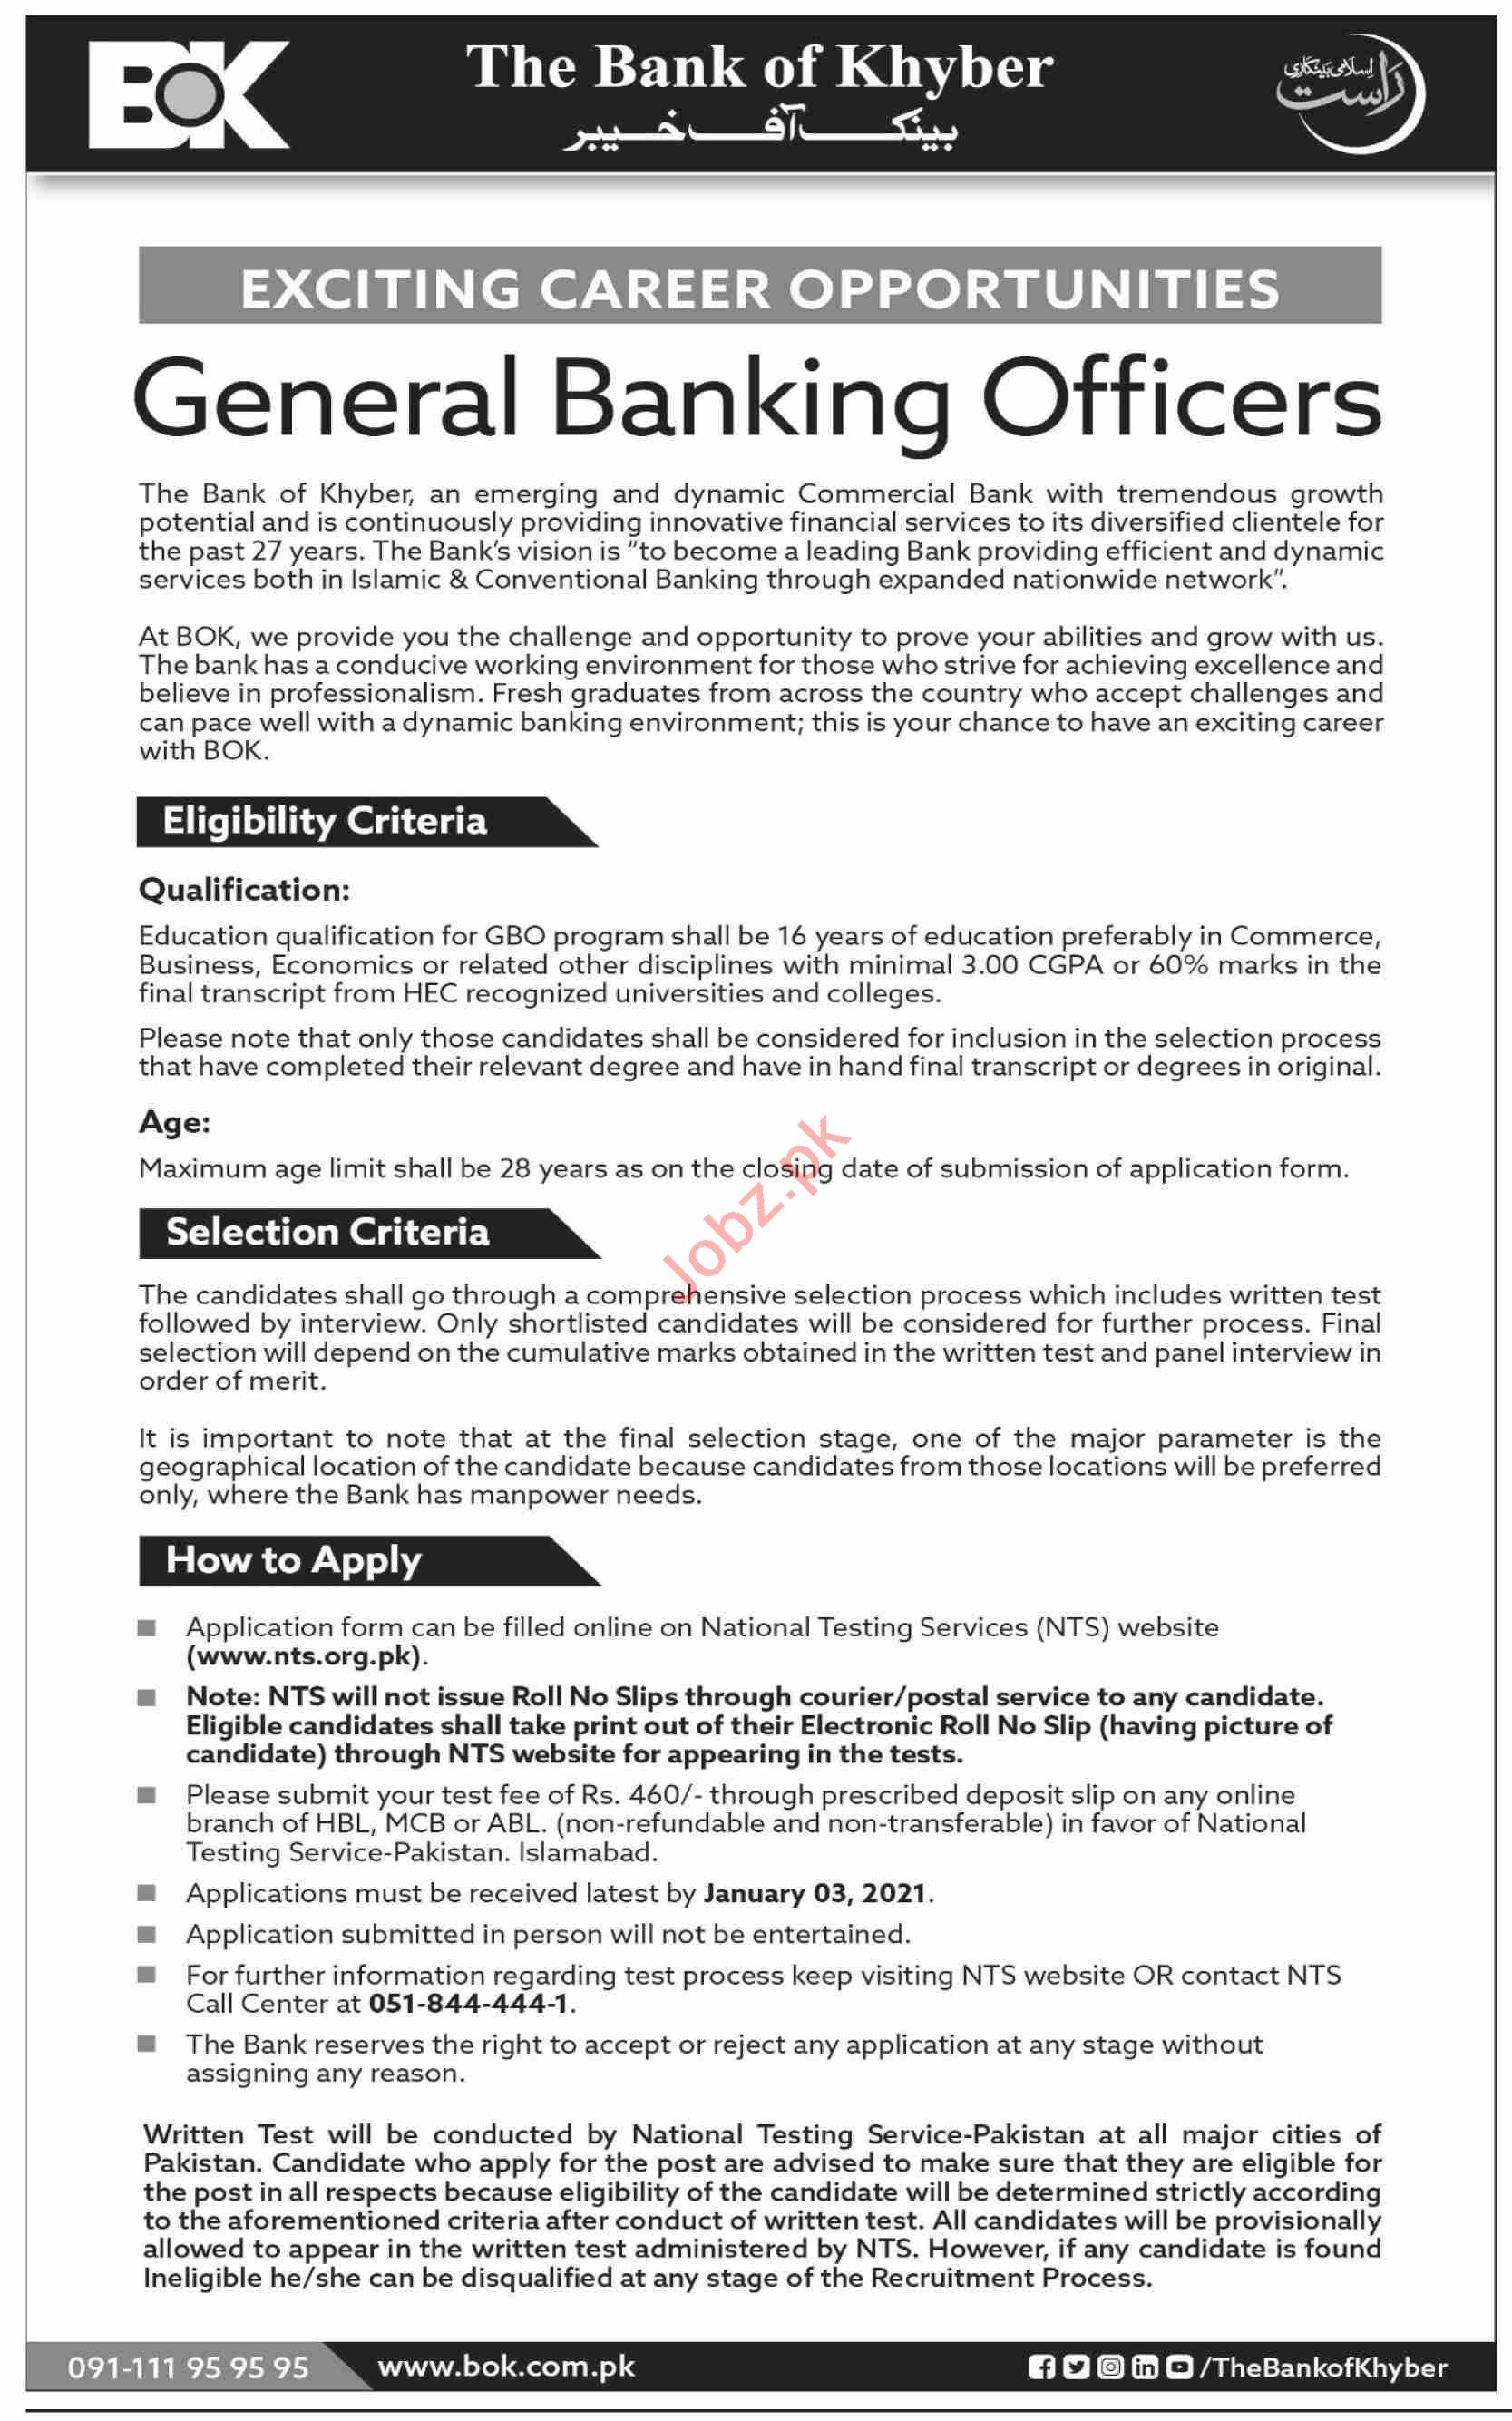 The Bank of Khyber BOK Jobs 2021 General Banking Officers